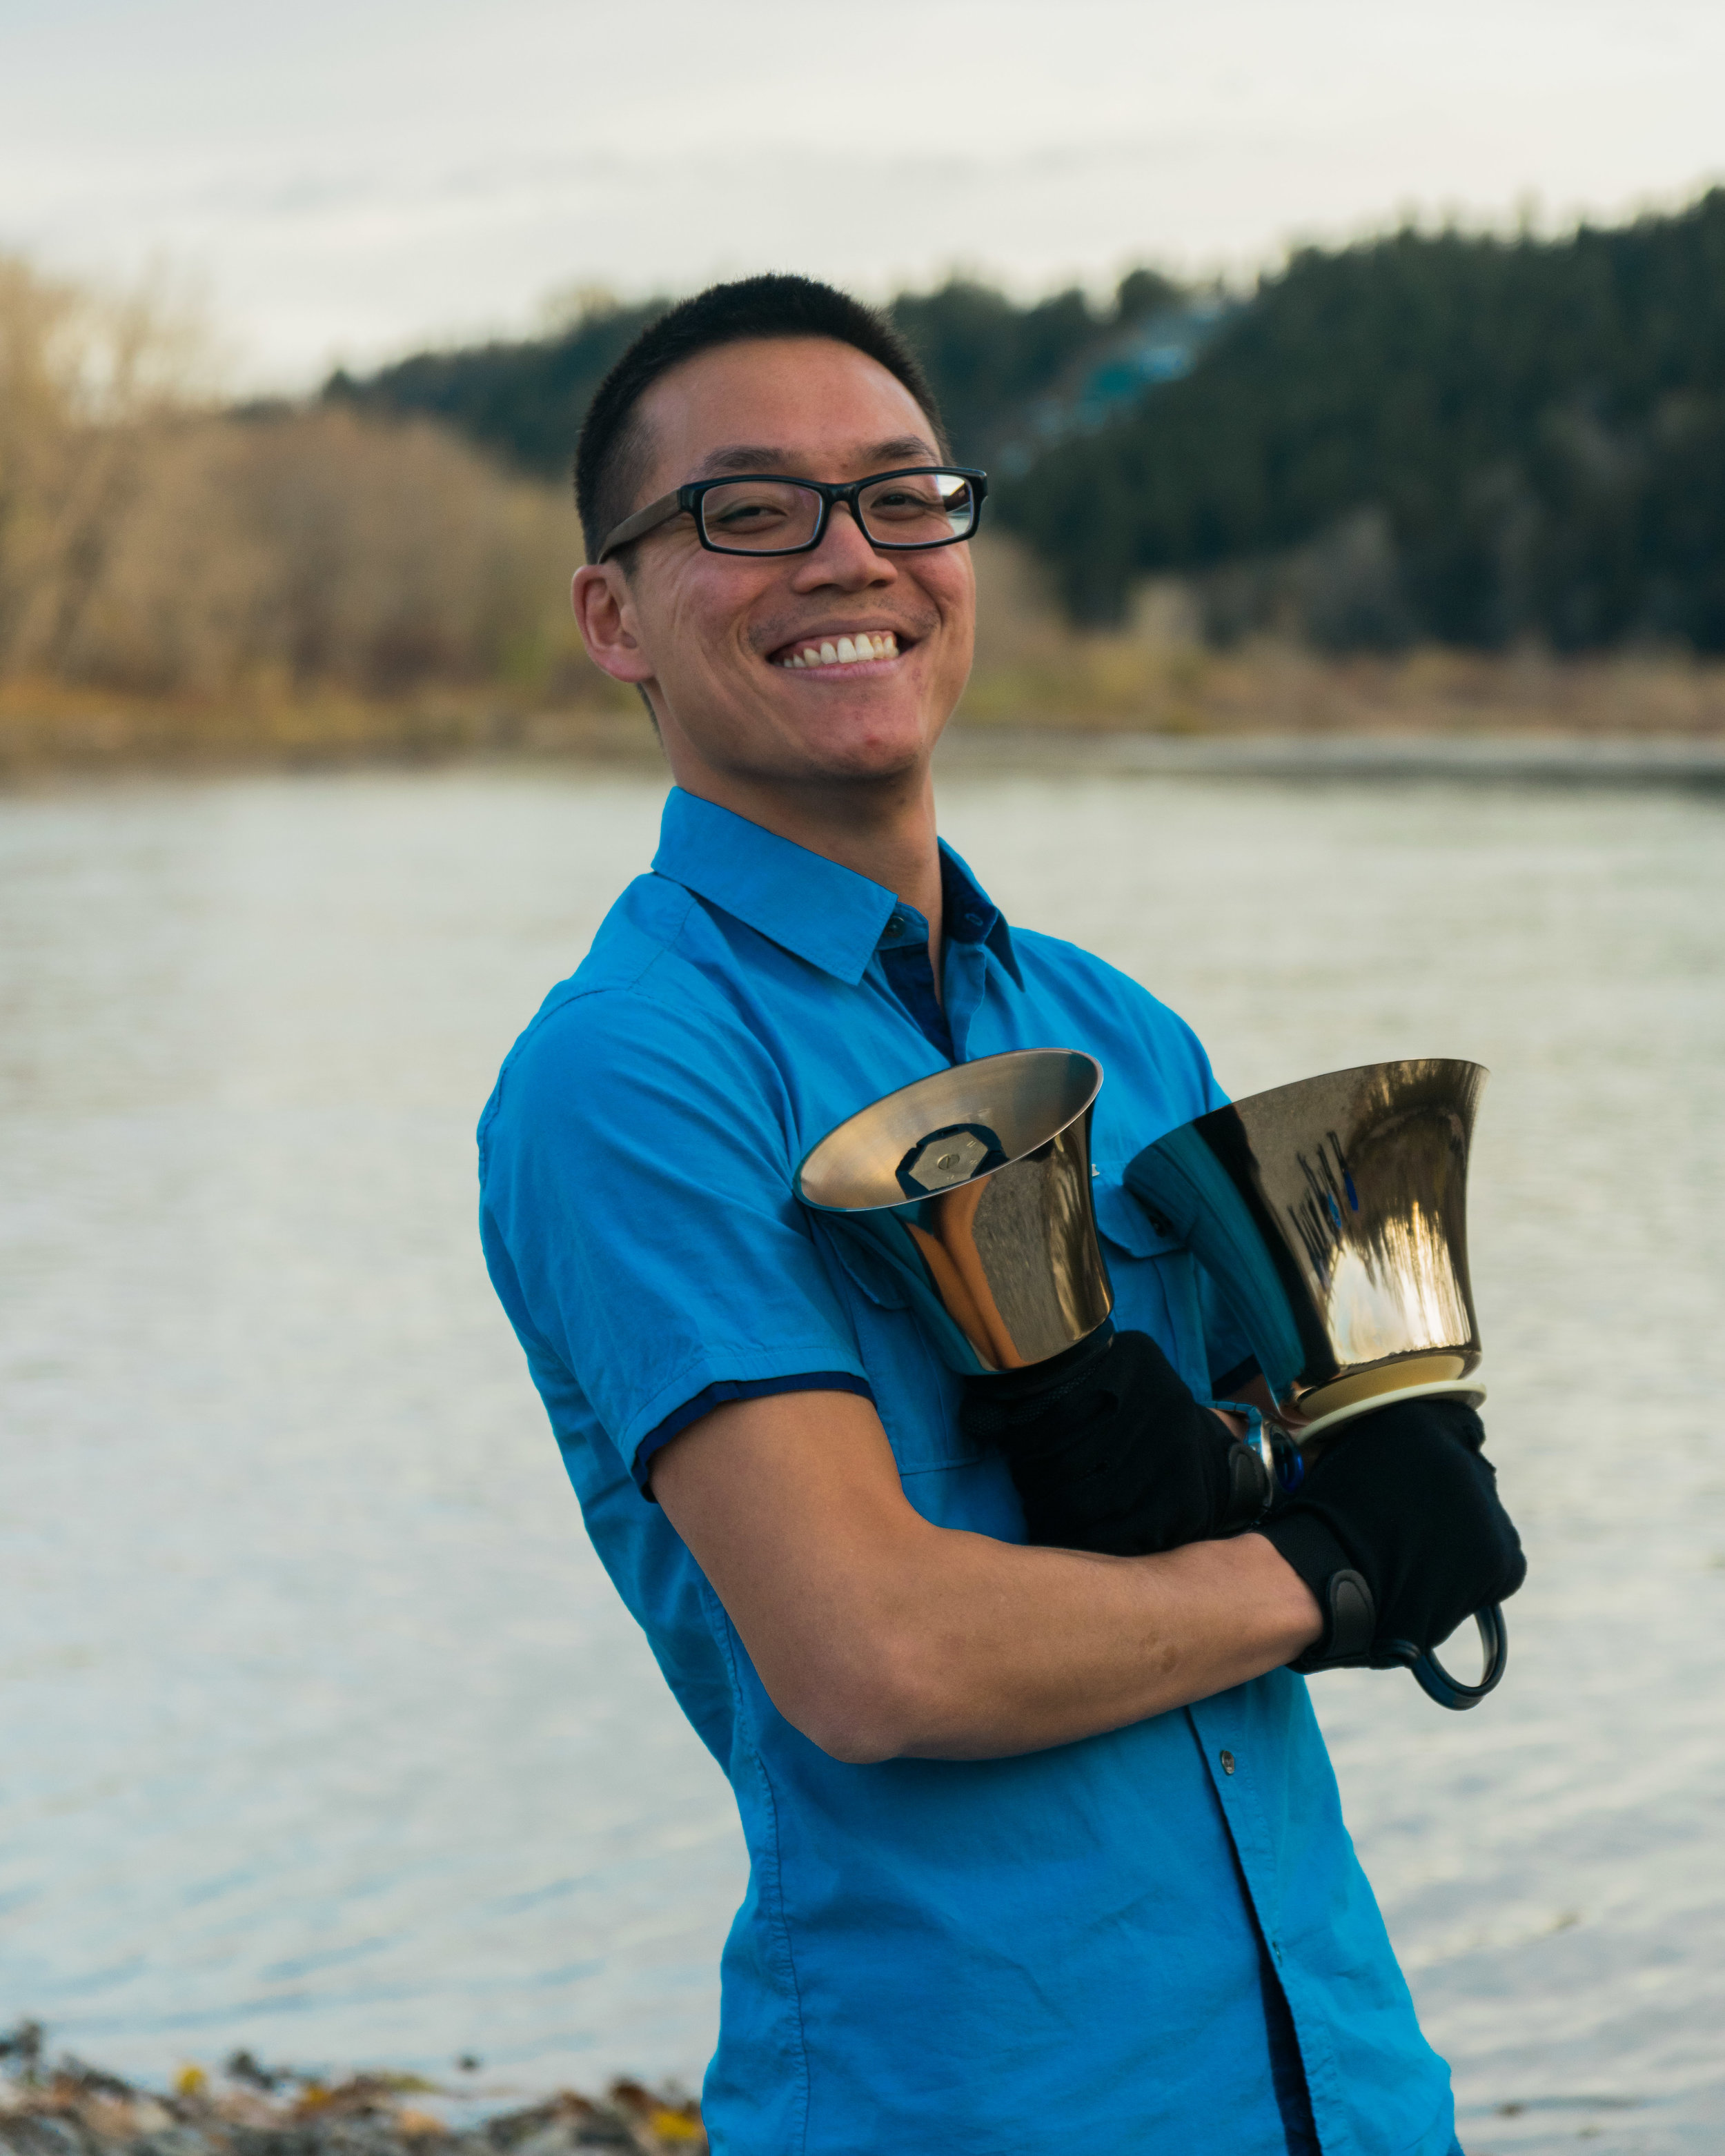 Daniel Chan - My journey with handbells started with my interest in finding a new hobby. Having played the violin for a number of years prior and a brief stint with the Mt. Royal Youth Orchestra, I felt that it was time to try something new. Having no idea what to type in the google search bar, I put in 'bell ringing.' That led me to something completely different! (think hunchback of Notre Dame) Having refined my search to 'handbell ringing', it brought me to a beginner hand bell group -- the one known today as Bell Époque. While ringing in this group for almost a year, I was challenged to go further with my bell ringing -- and that led me to where I am today! I am very glad to be ringing and learning with many experienced ringers in the group and I look forward to what comes next!